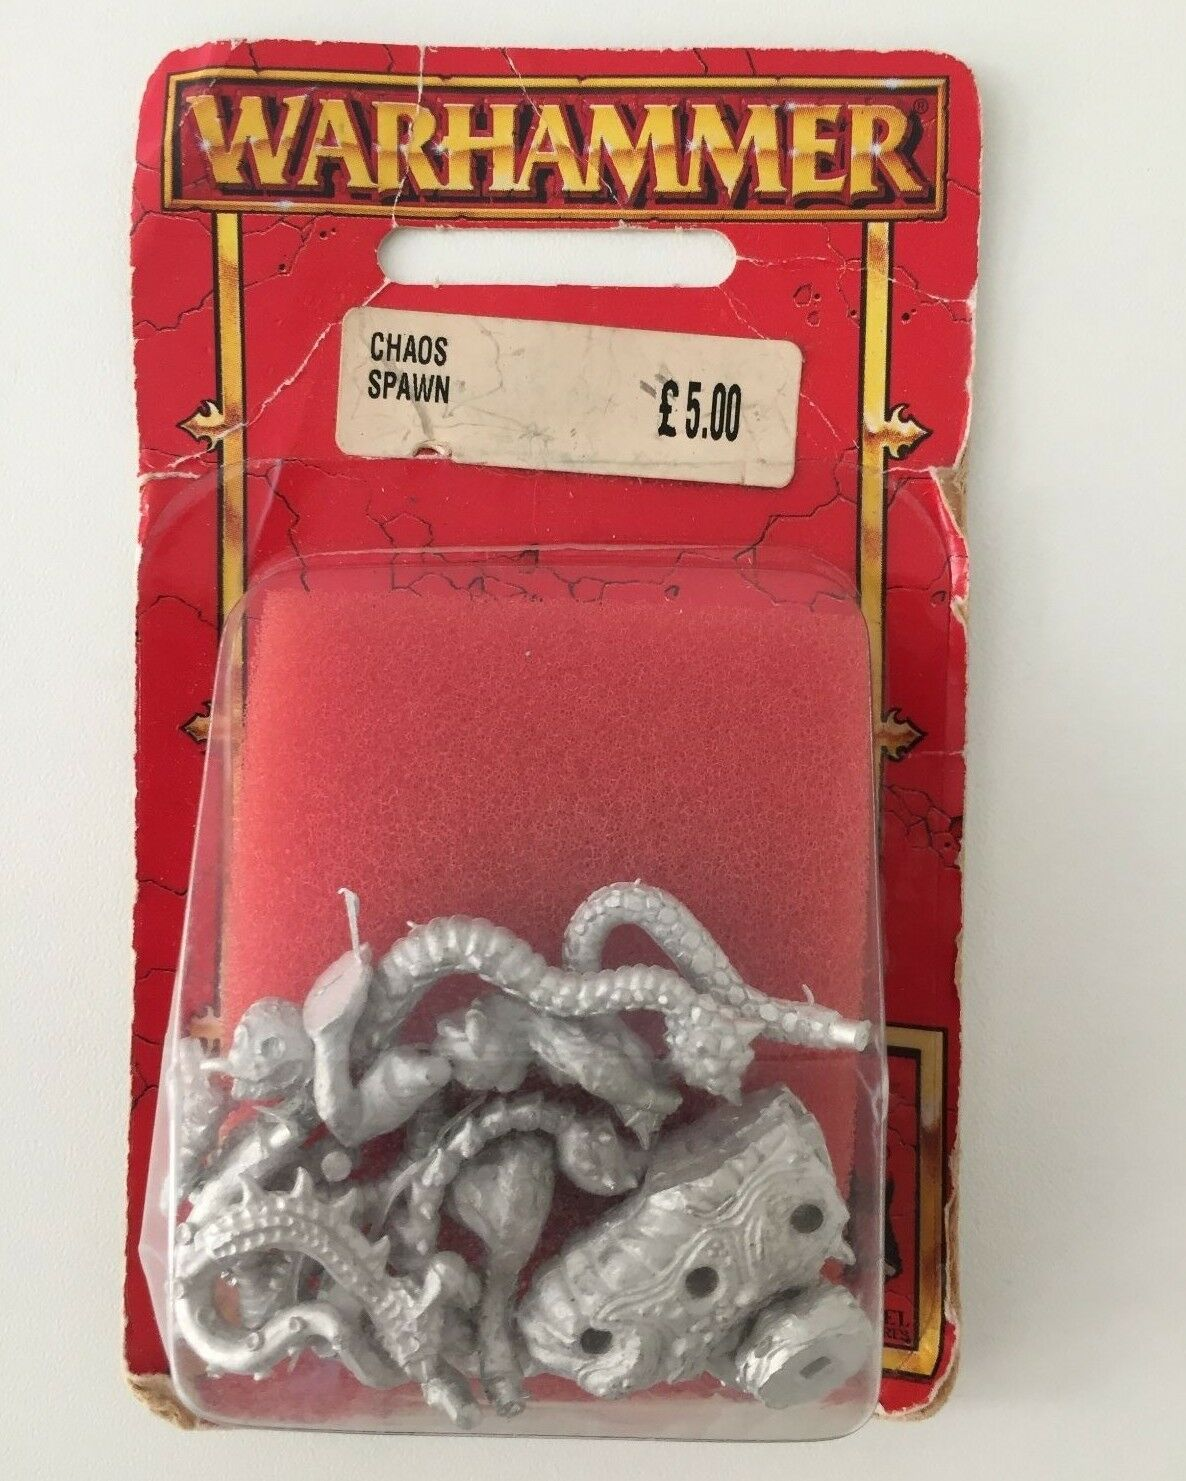 WARHAMMER CHAOS SPAWN NURGLE SLAANESH KHORNE TZEENTCH METAL BLISTER (RED 575)